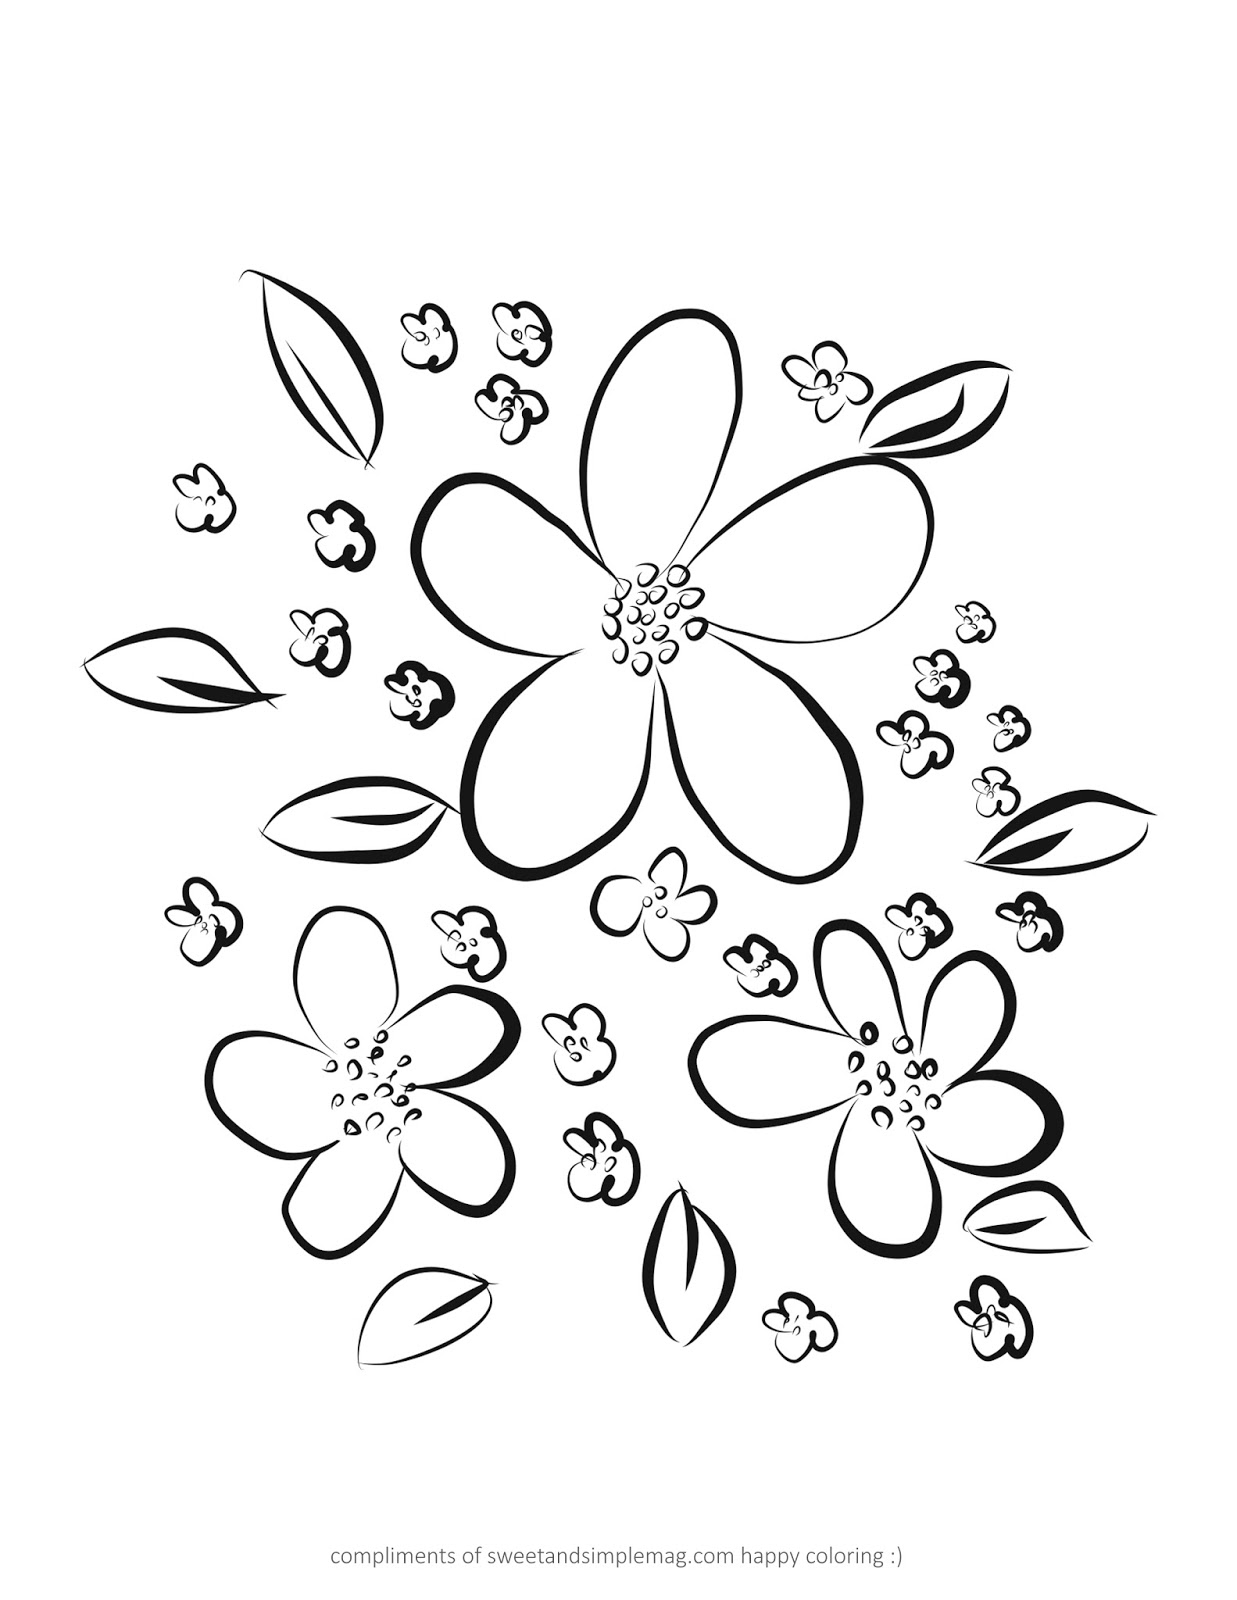 sweet and simple magazine coloring pages